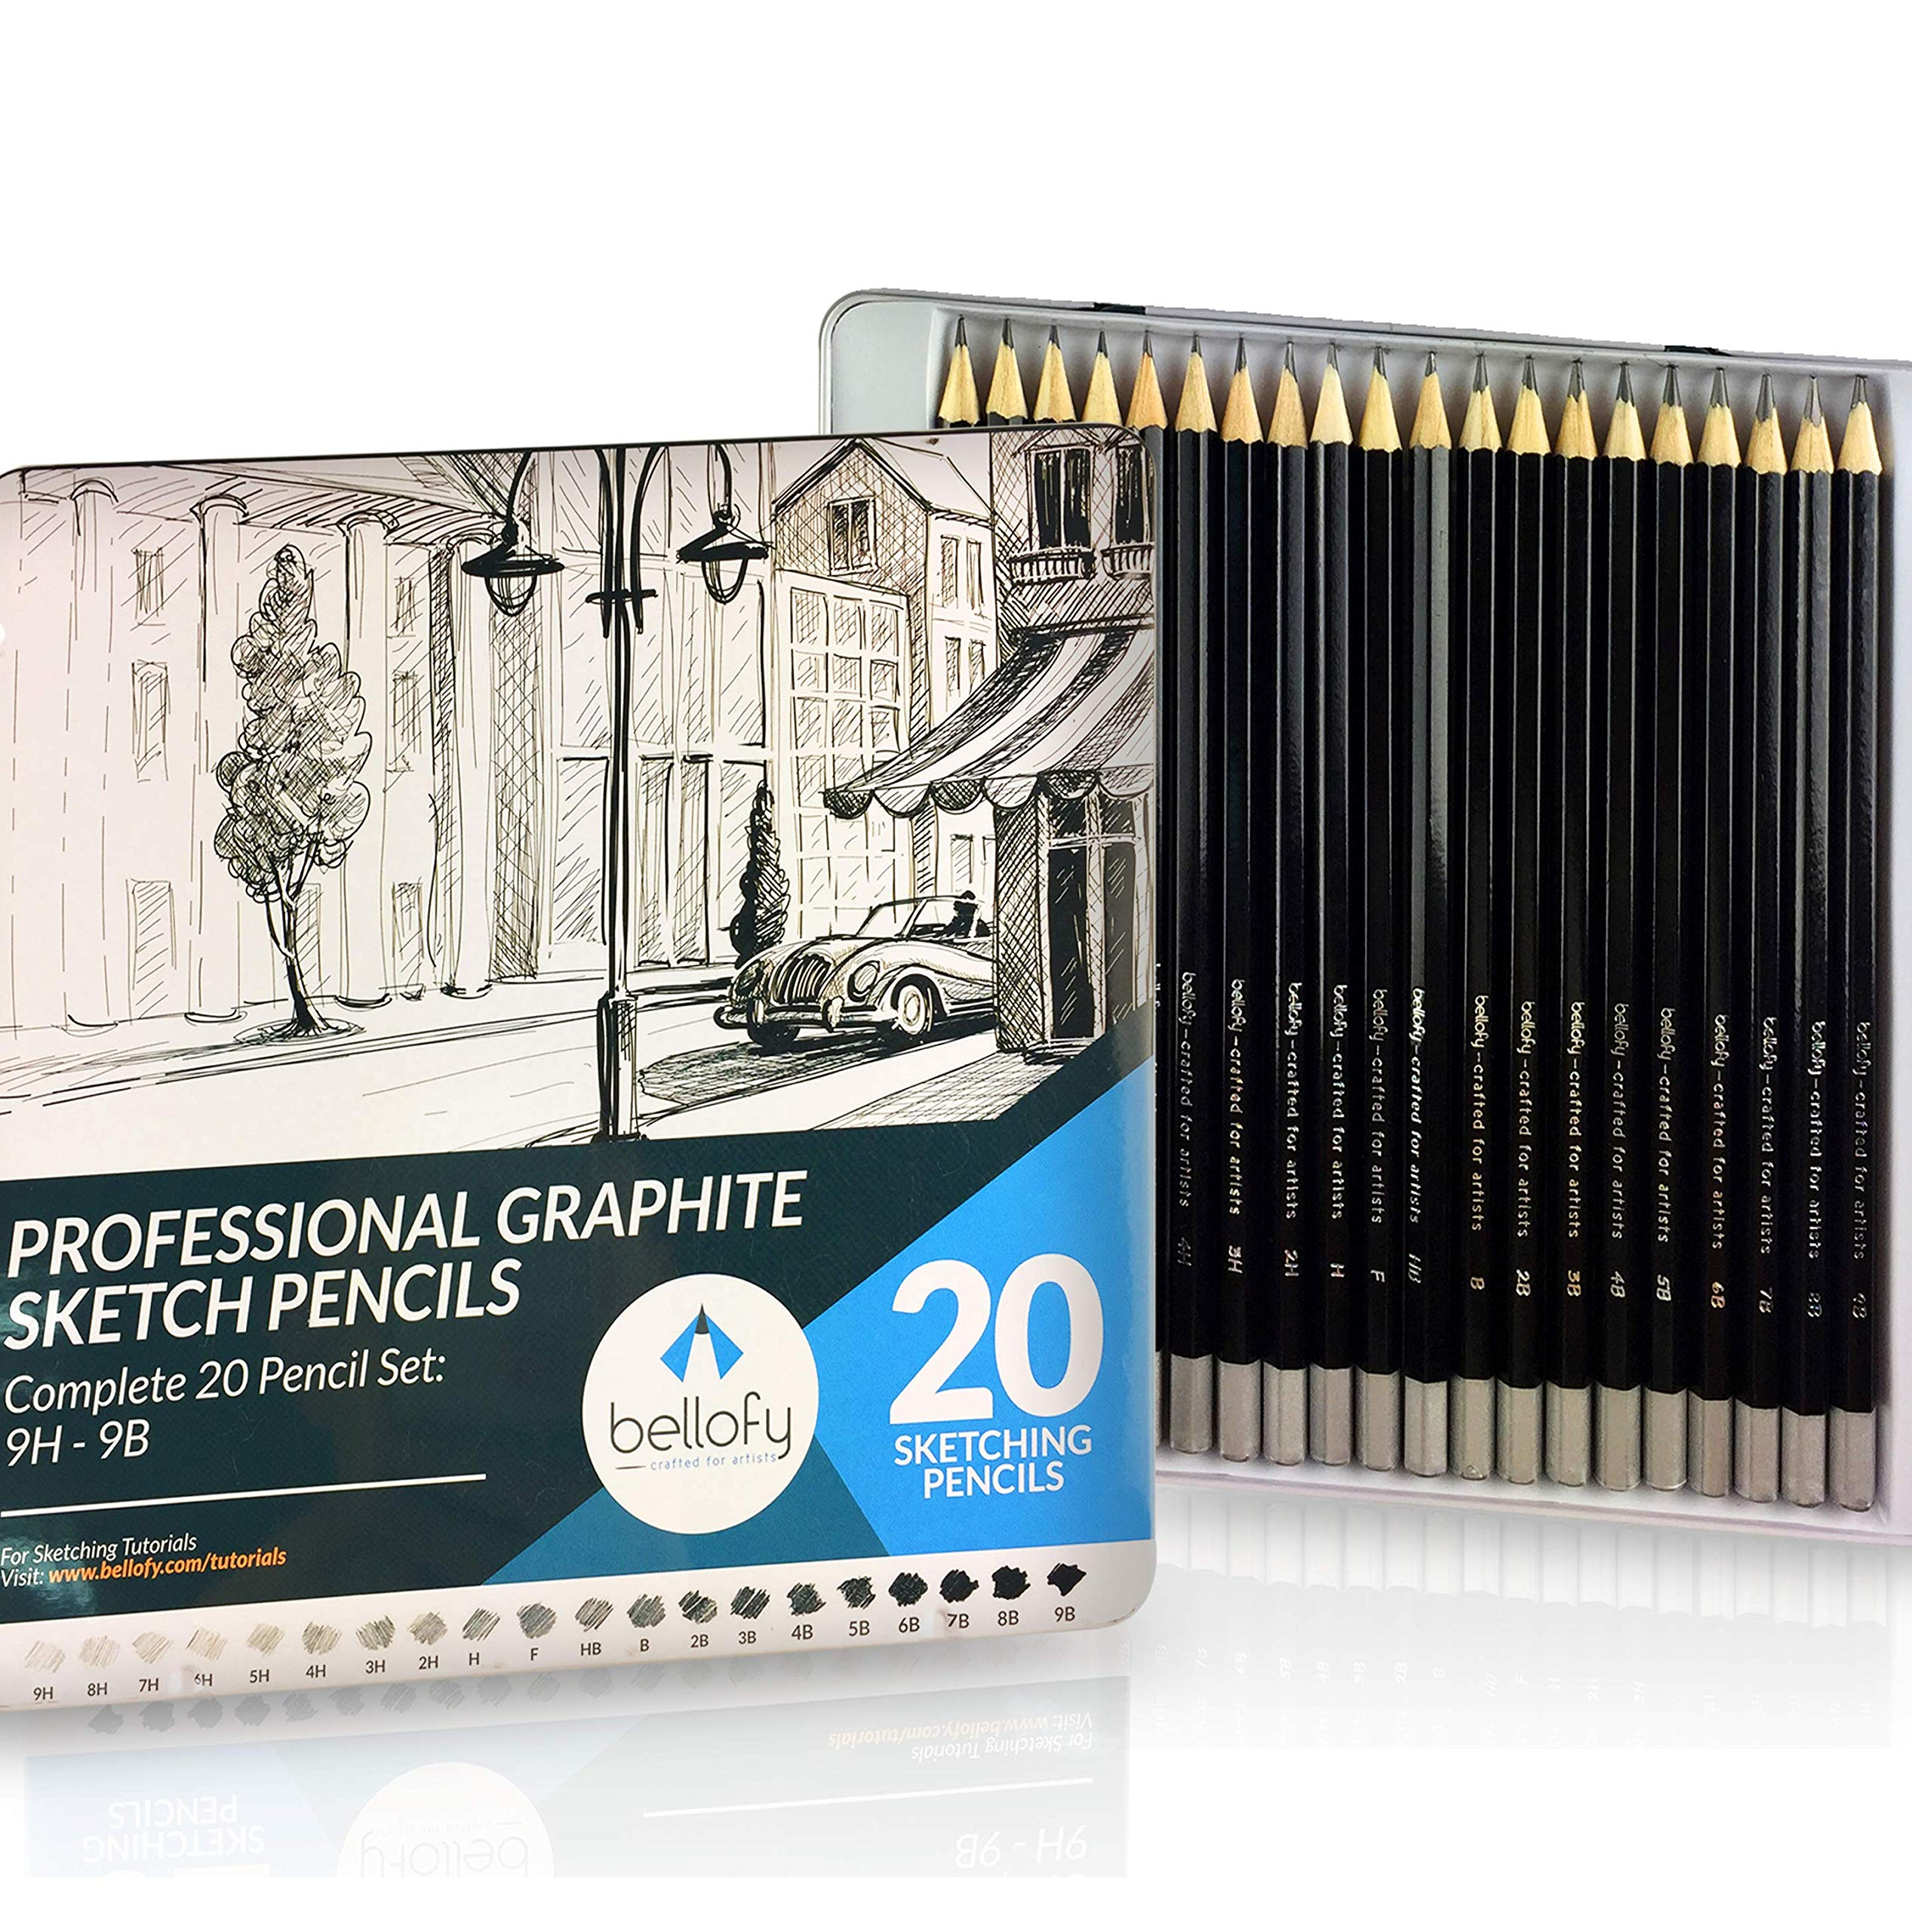 Bellofy 20 Sketching Pencils - Complete Professional Graphite Pencil Set for Sketch Drawing - 9B to 9H Art Travel Set for Adults and Kids - Shading Pencils, Drawing and Art Supplies, Sketching Set by Bellofy